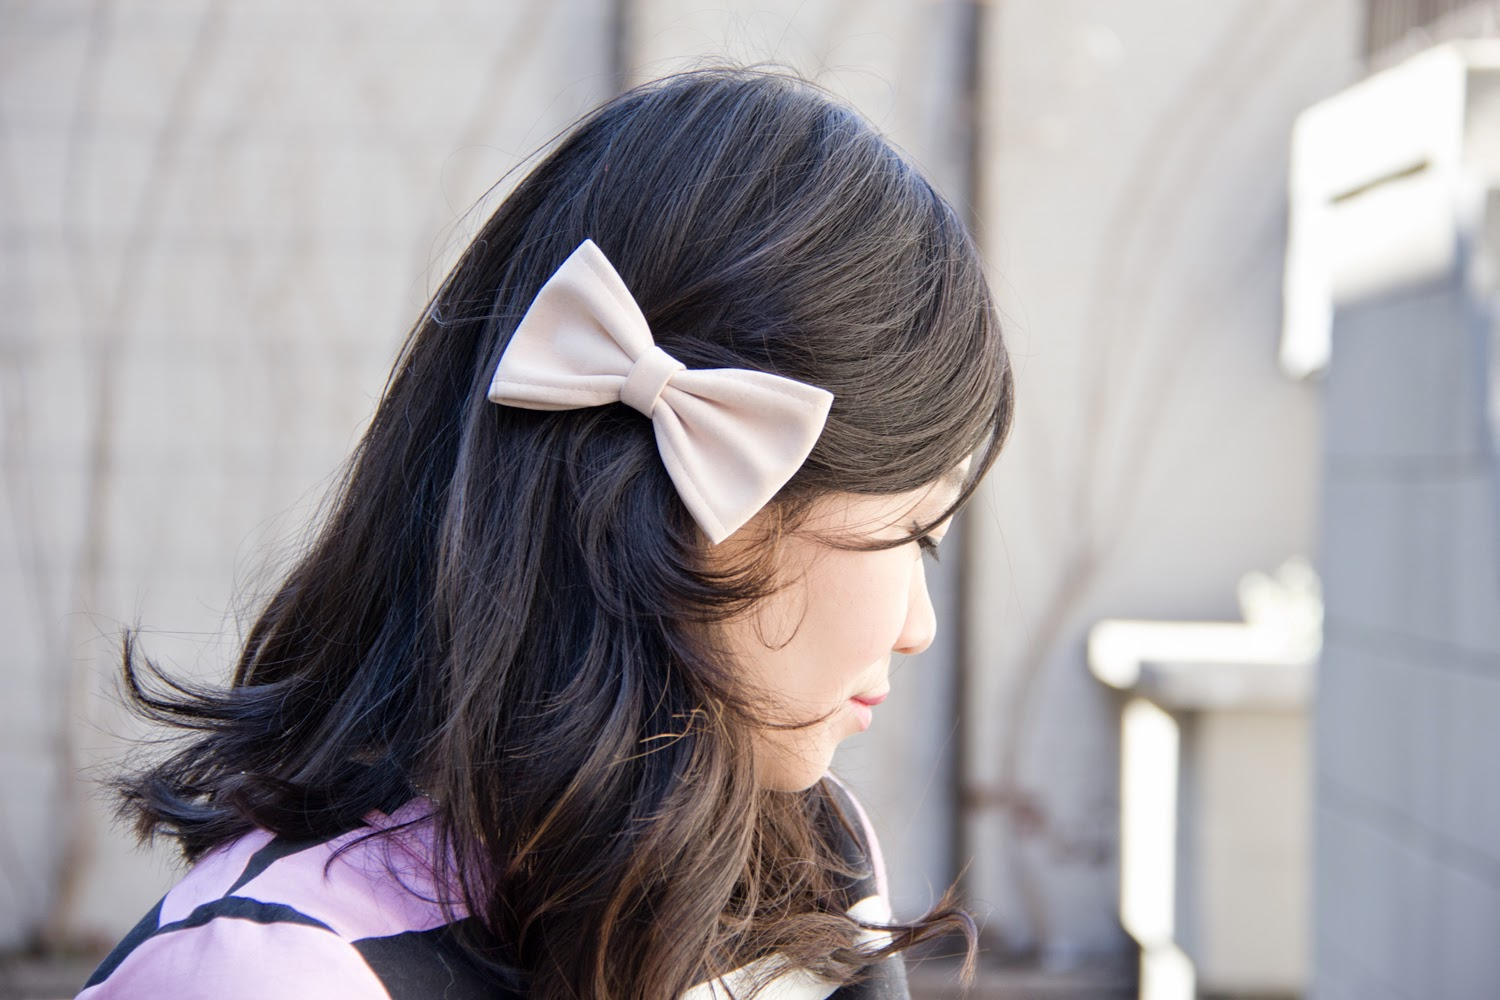 pretty-hair-clip, bow-tie, pastel-pink, spring-accessory